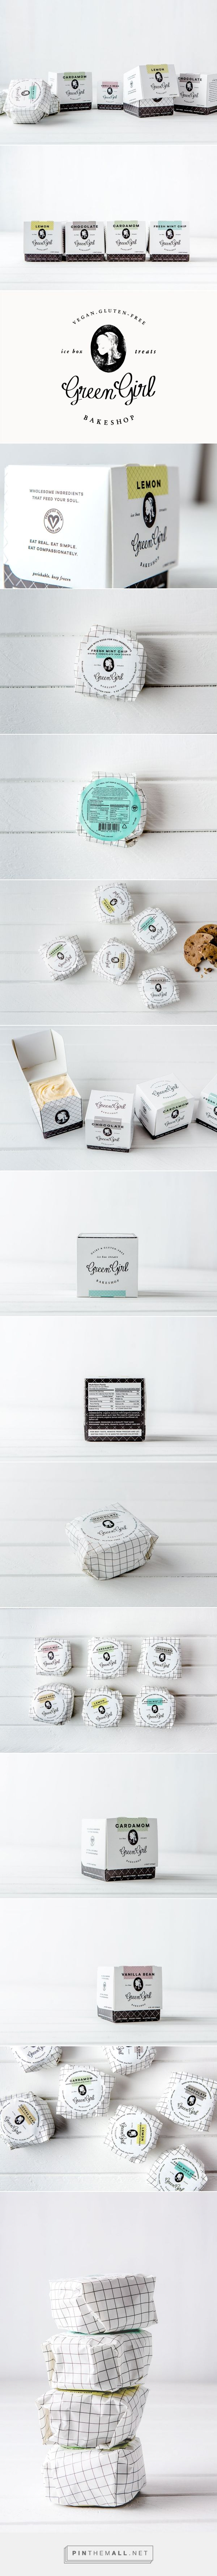 Green Girl Bakeshop Branding and Packaging by Nicole LaFave on Behance | Fivestar Branding – Design and Branding Agency & Inspiration Gallery